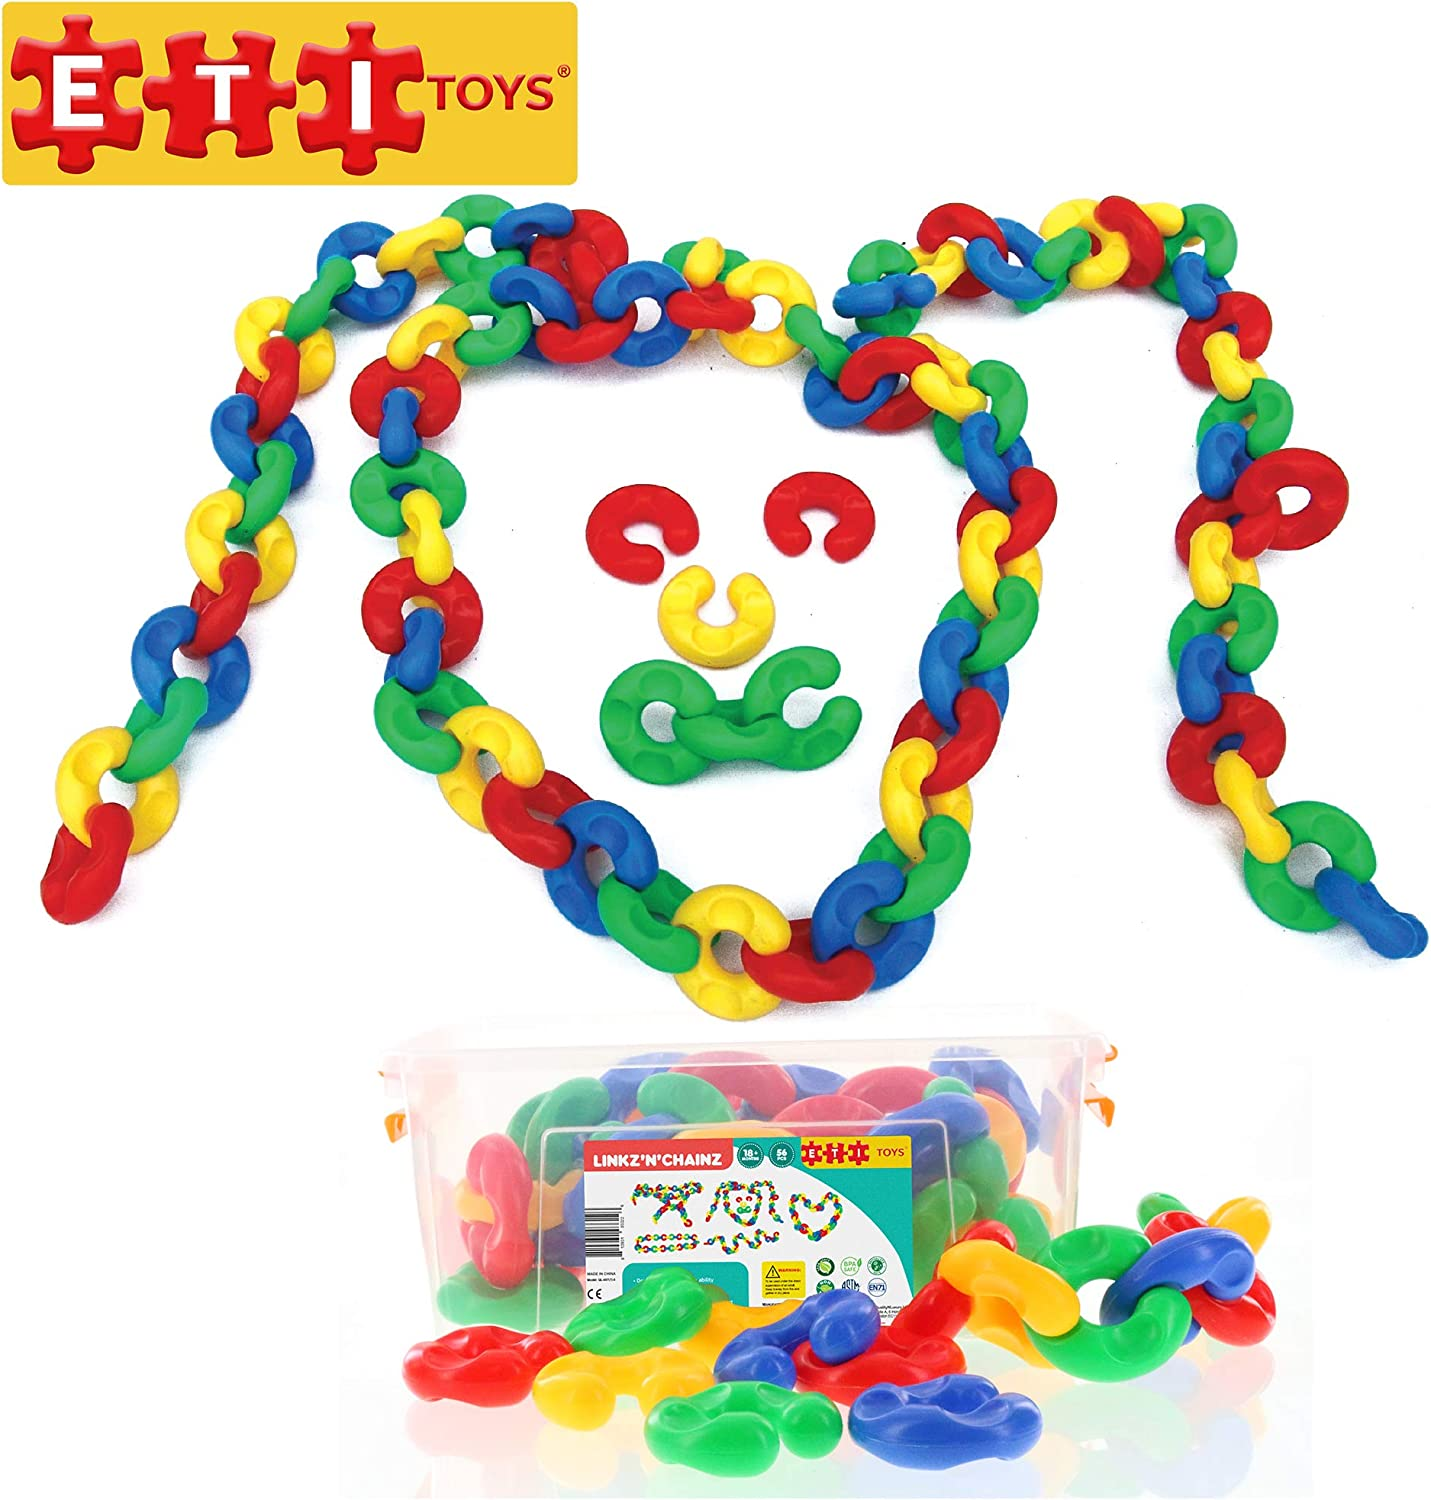 ETI Toys   56 Piece Linkz'N'Chainz; Build Animals, Necklace, Heart, Clown, Endless Designs  100% NonToxic, Fun, Creative Skills Development  Best Gift, Toy for 3, 4, 5 Year Old Boys and Girls.